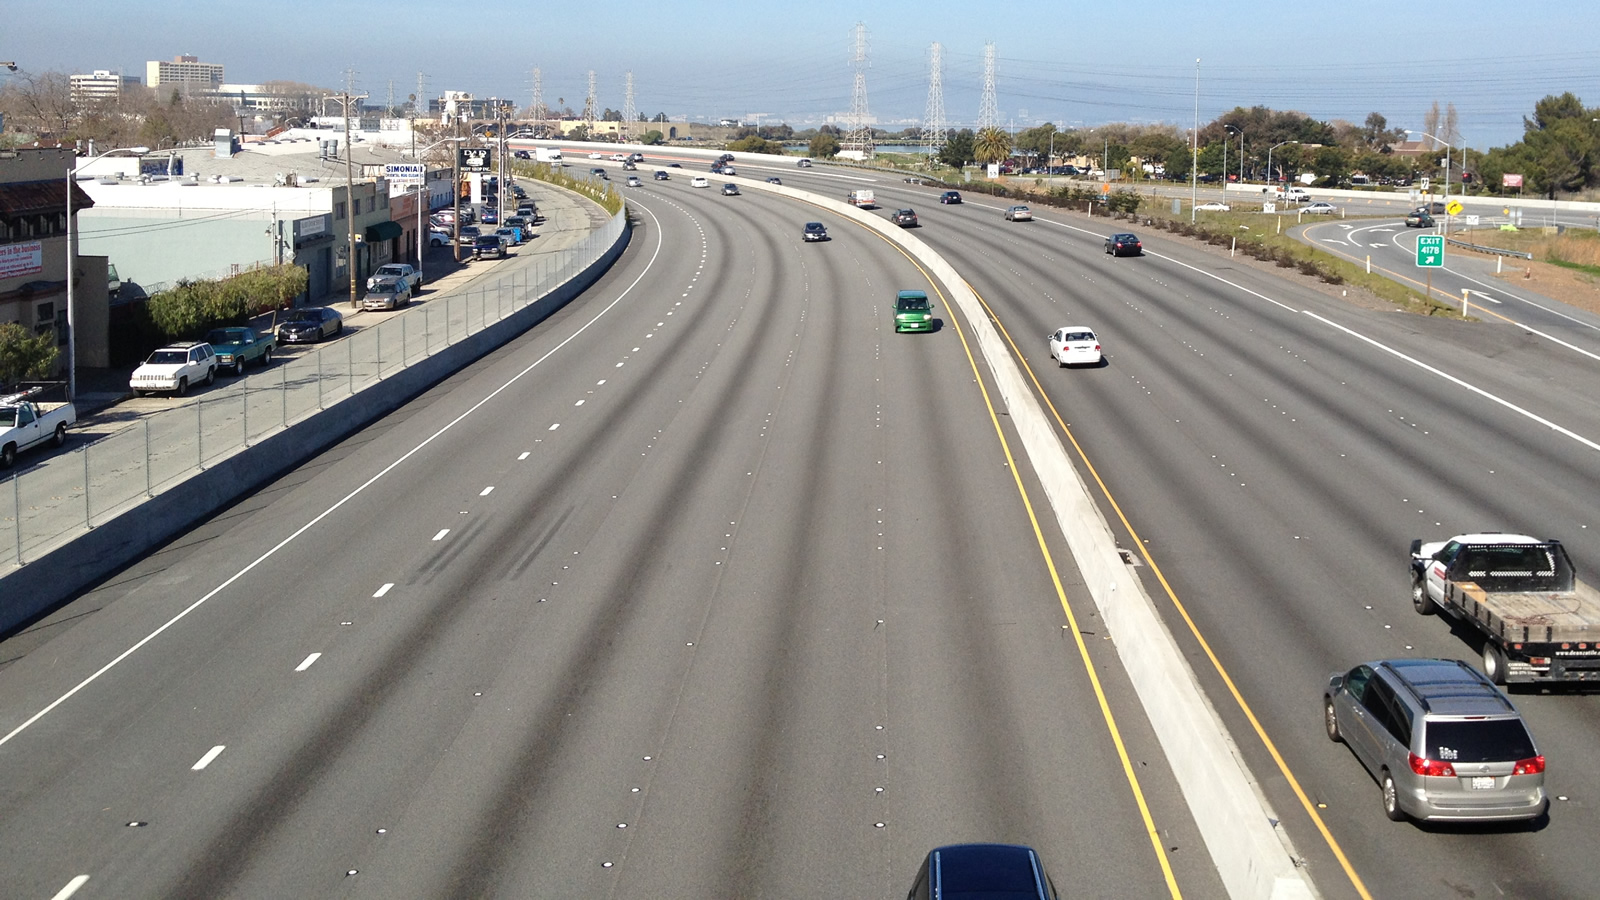 <h3>U.S. Highway 101 Expansion, California</h3><h4>Cost: $534 million</h4><p>It's a boondoggle because: This is U.S. Highway 101's seventh expansion in the San Mateo area since the 1980s. It's projected to bring more cars into an already congested area, while directly conflicting with California's global warming goals.</p><em>David Broad, CC-BY-2.0</em>